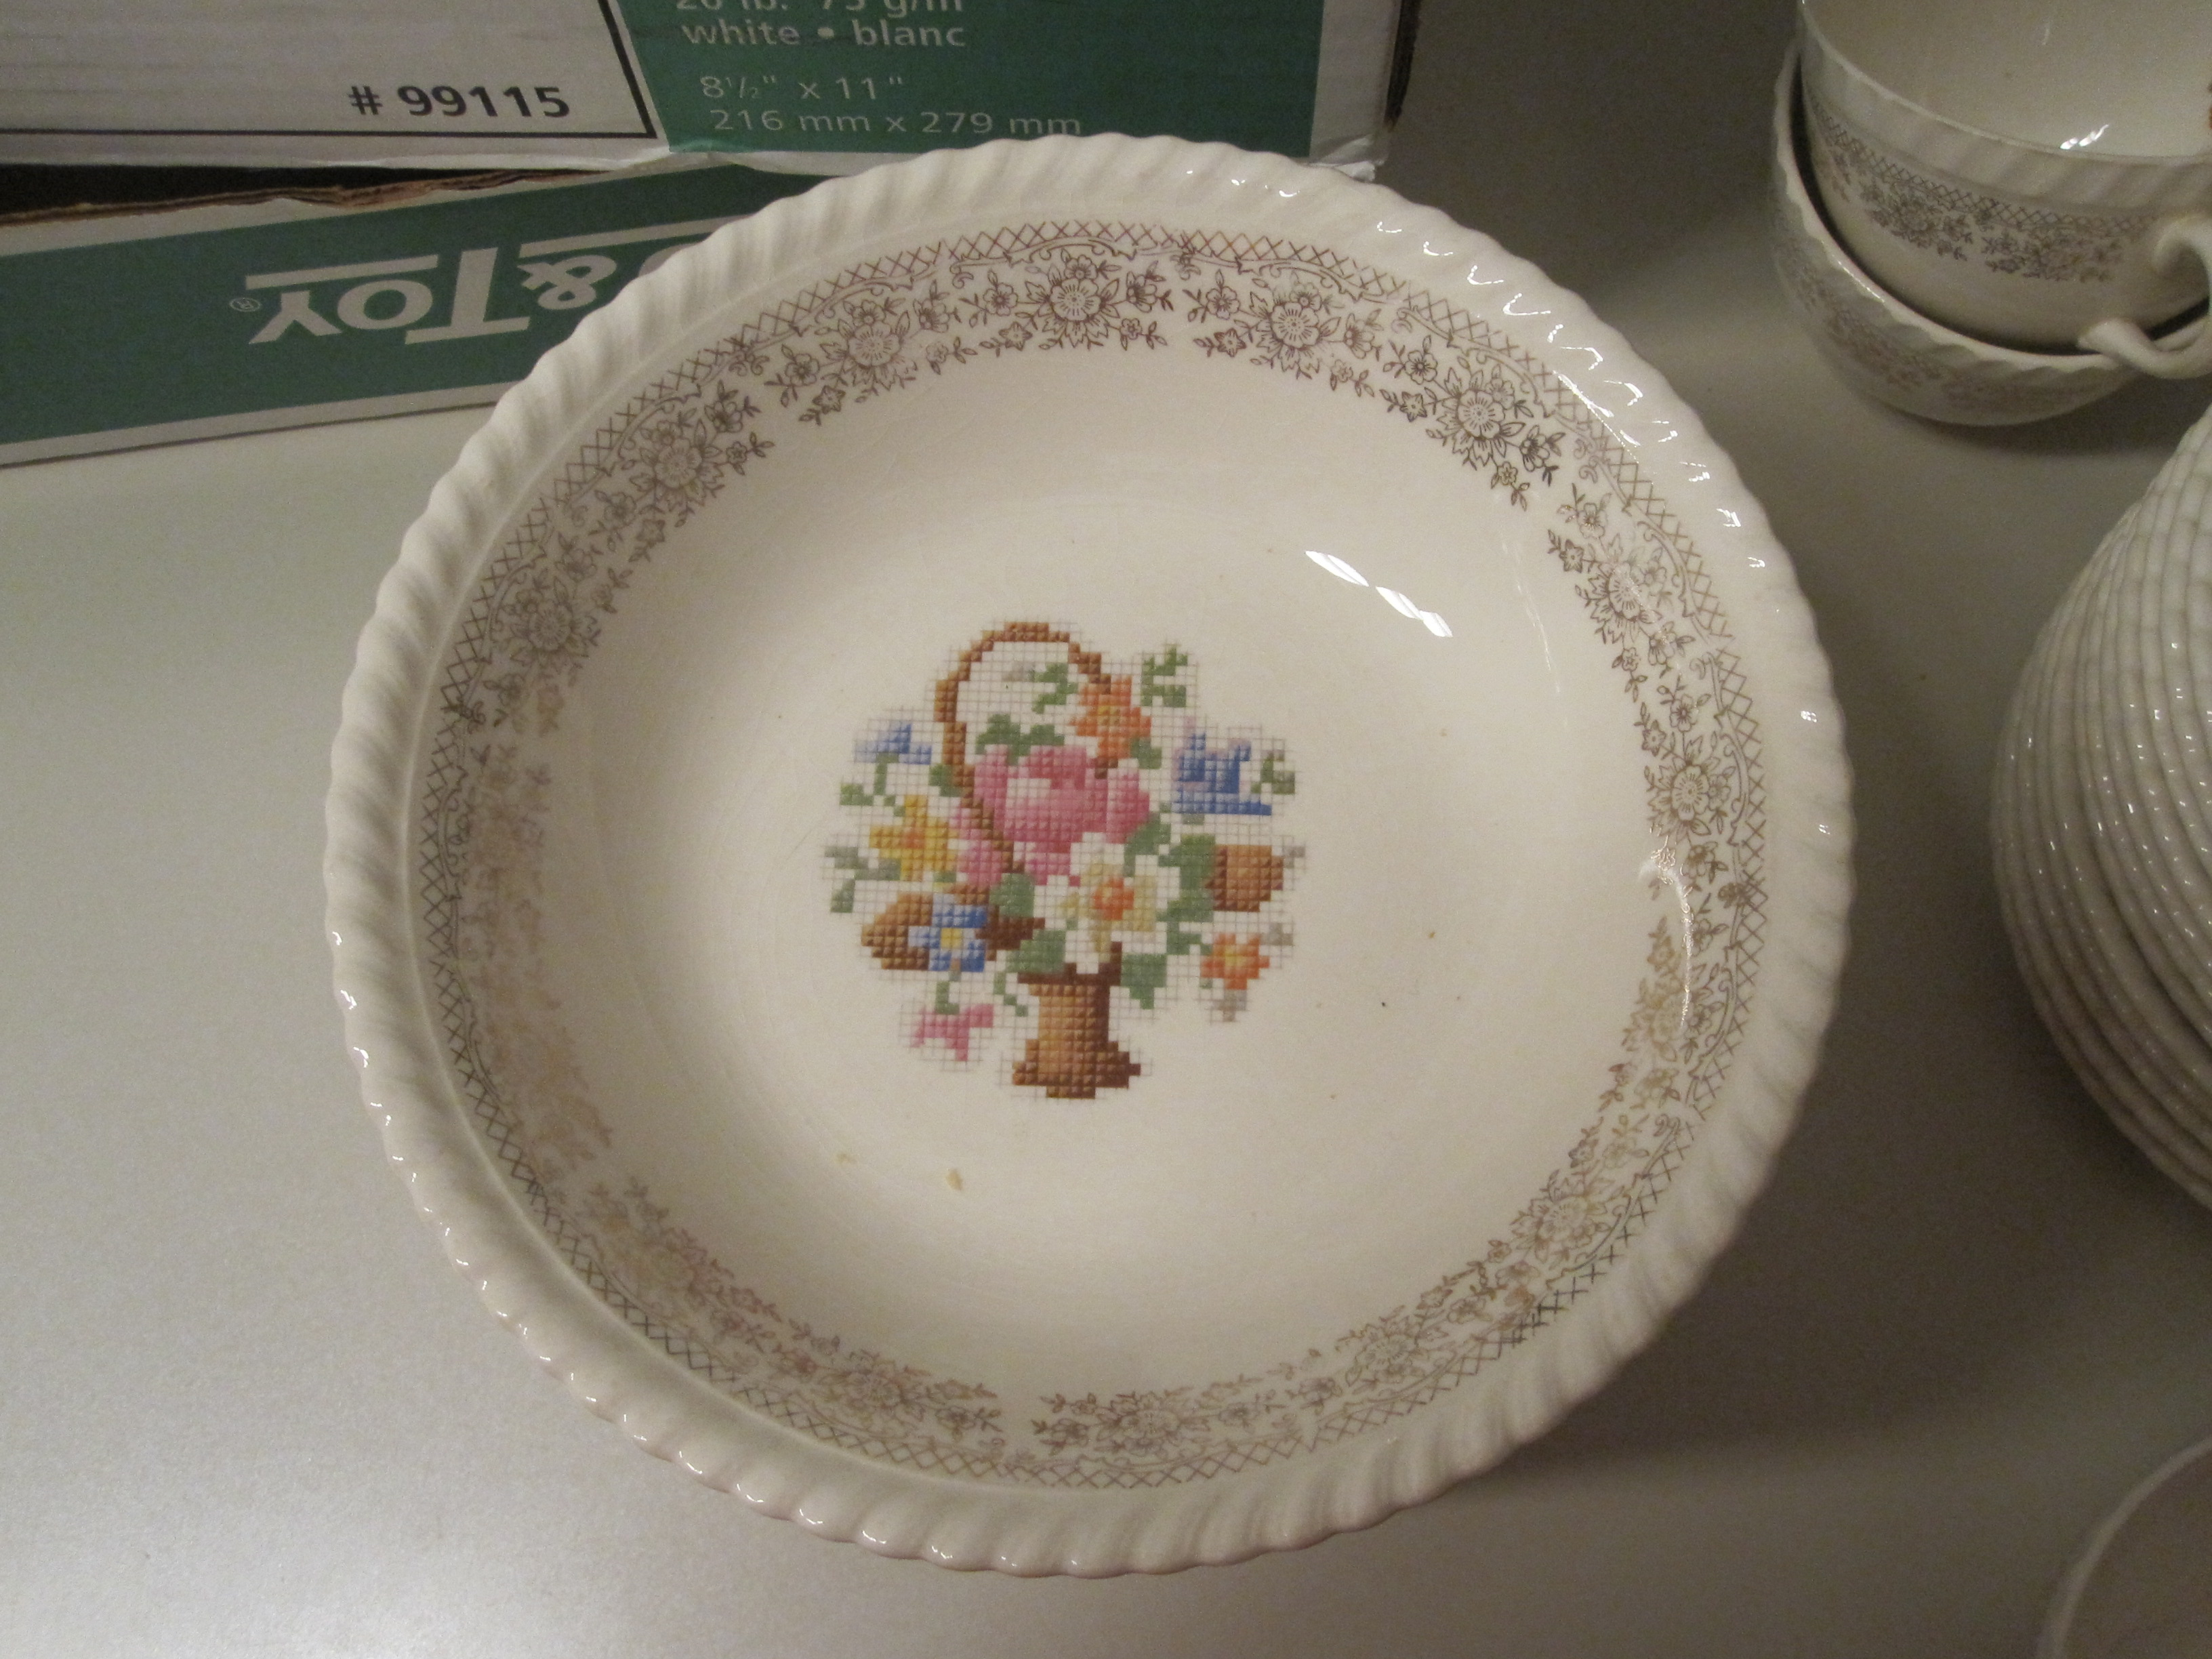 Part of my granny's dinnerware